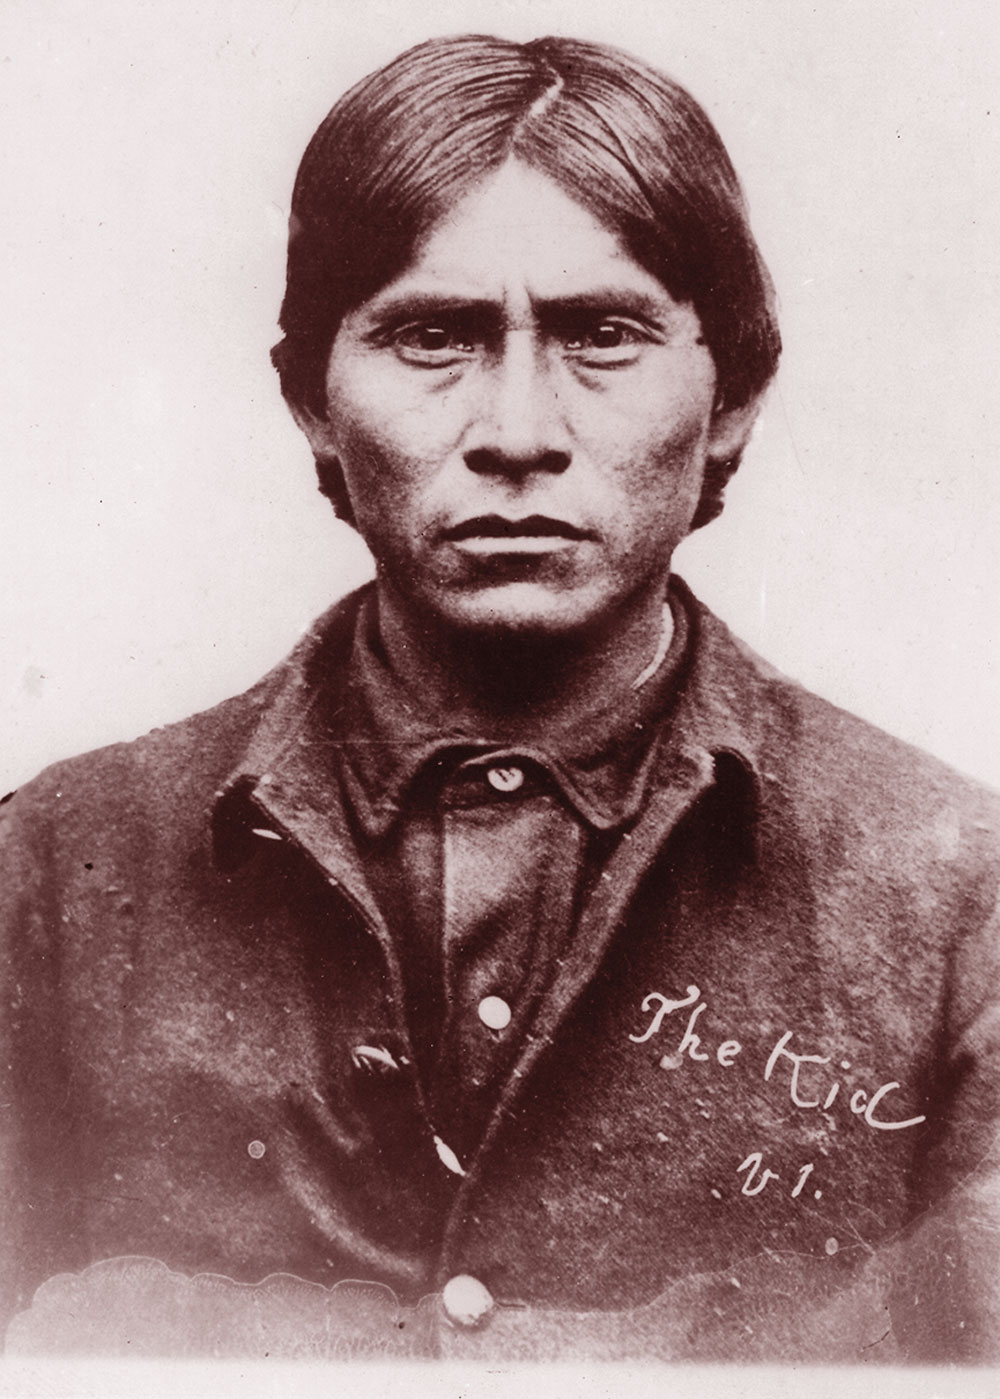 apache kid true west magazine